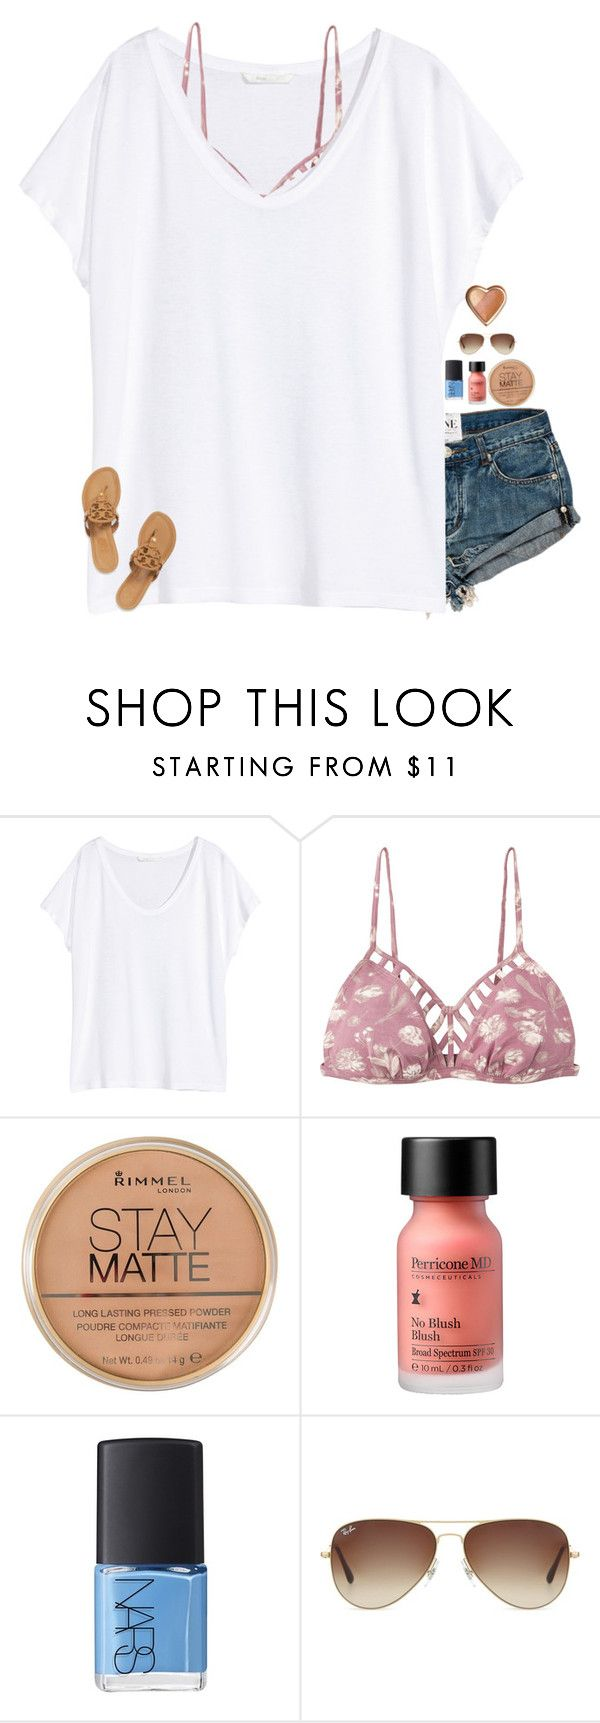 """""""bored af rn."""" by southern-belle606 ❤ liked on Polyvore featuring H&M, RVCA, Rimmel, Perricone MD, NARS Cosmetics, Ray-Ban and Tory Burch"""